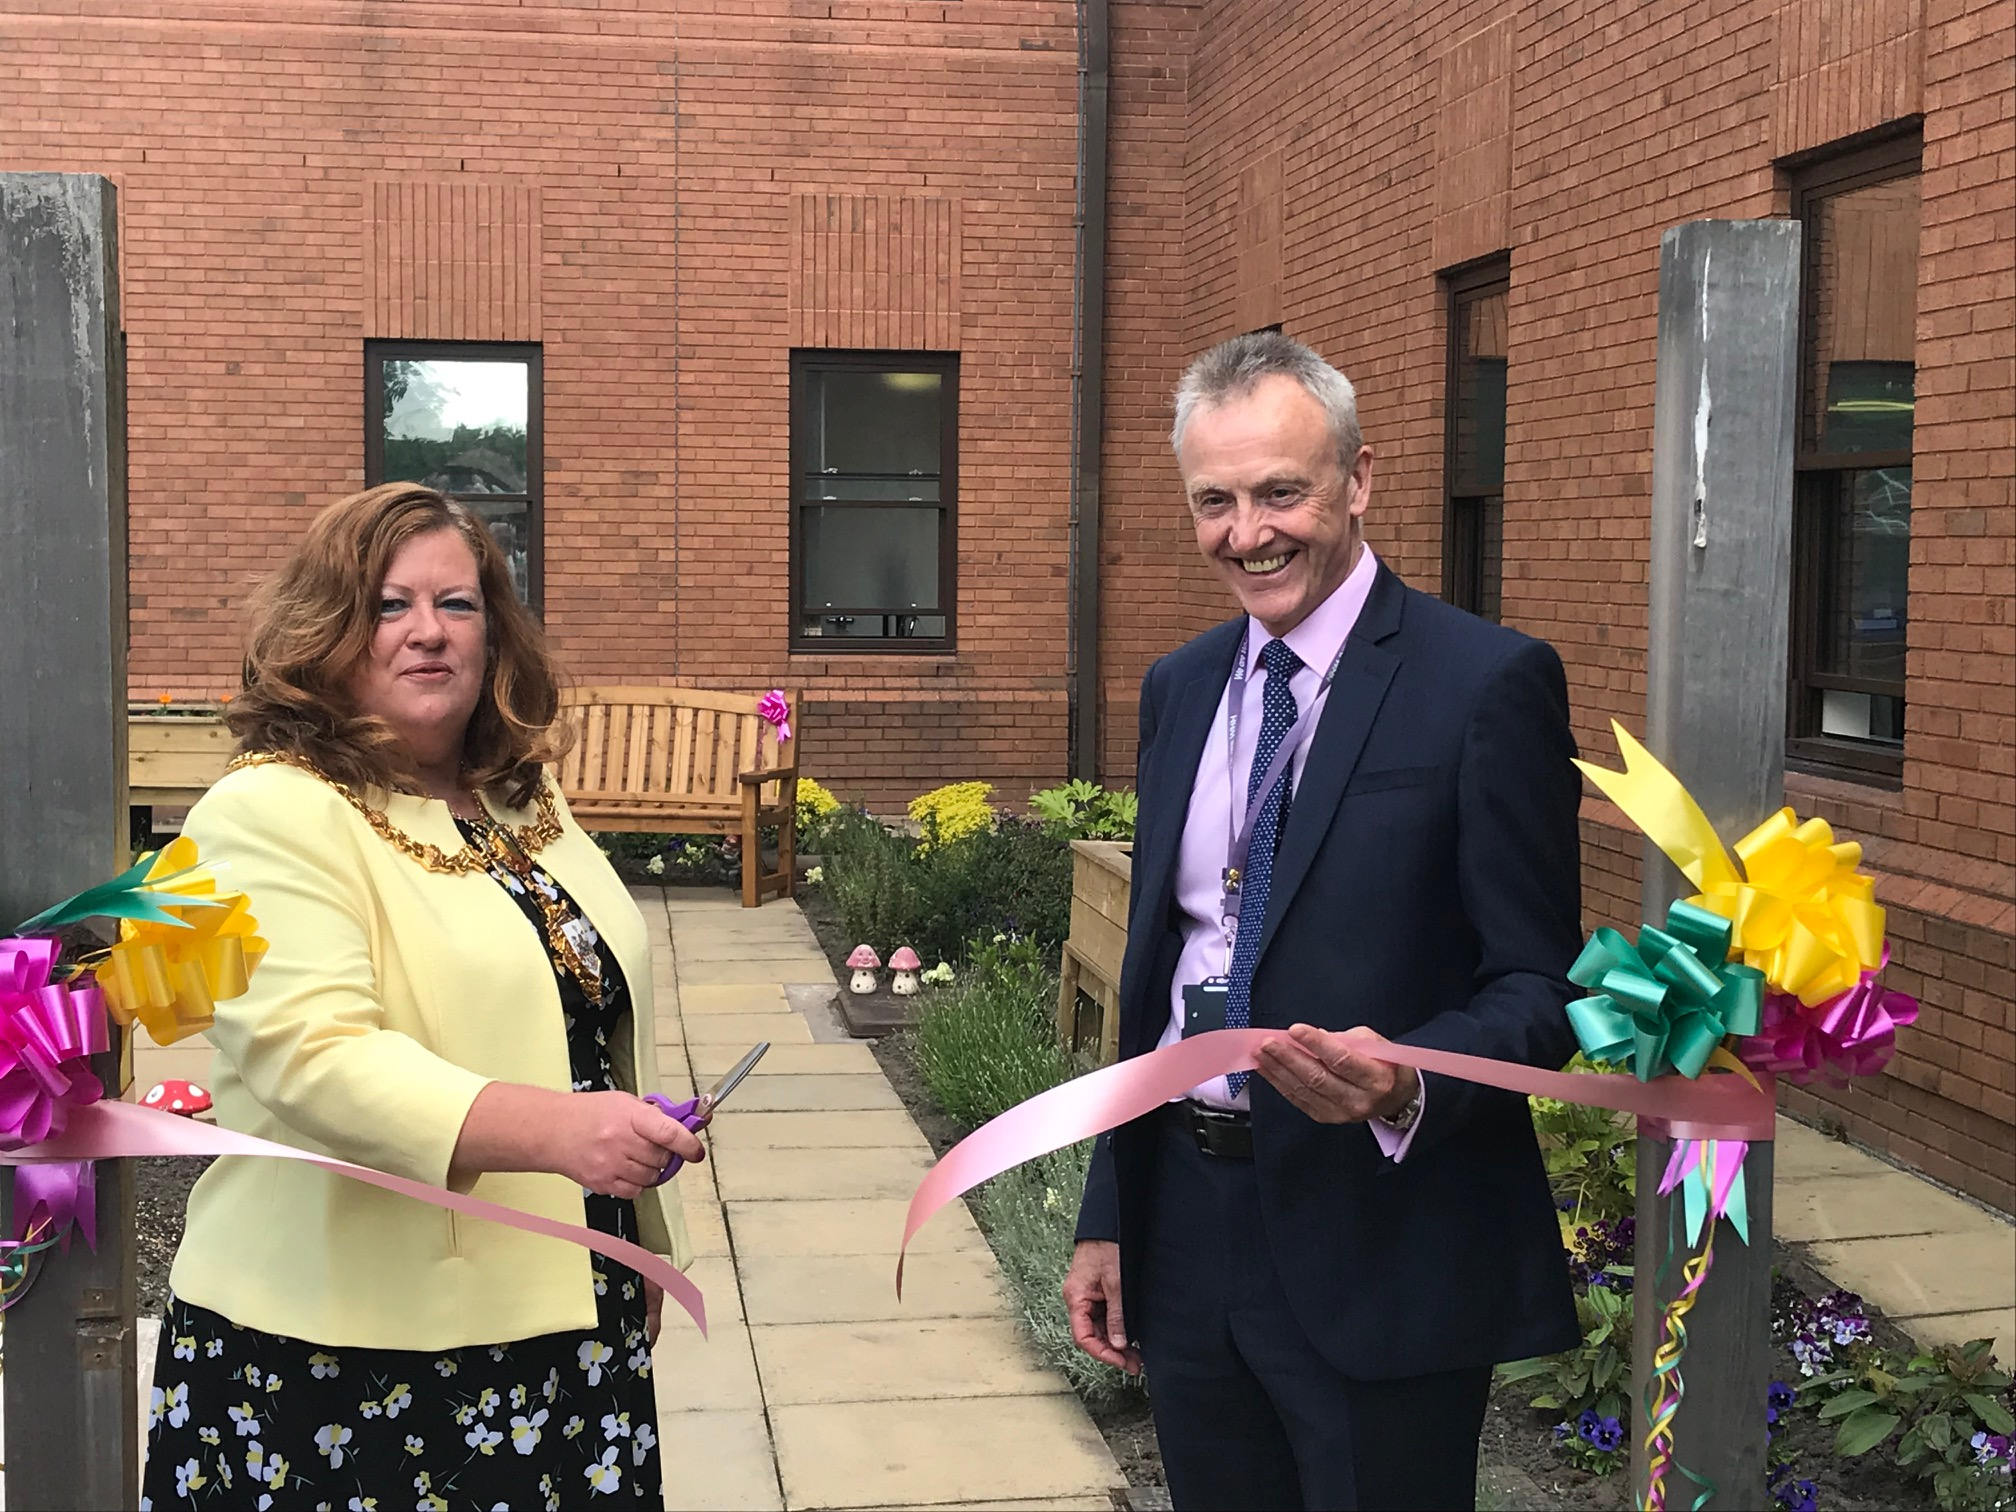 Mayor of Warrington, Cllr Wendy Johnson cutting the ribbon of the new garden with Chairman Steve McGuirk